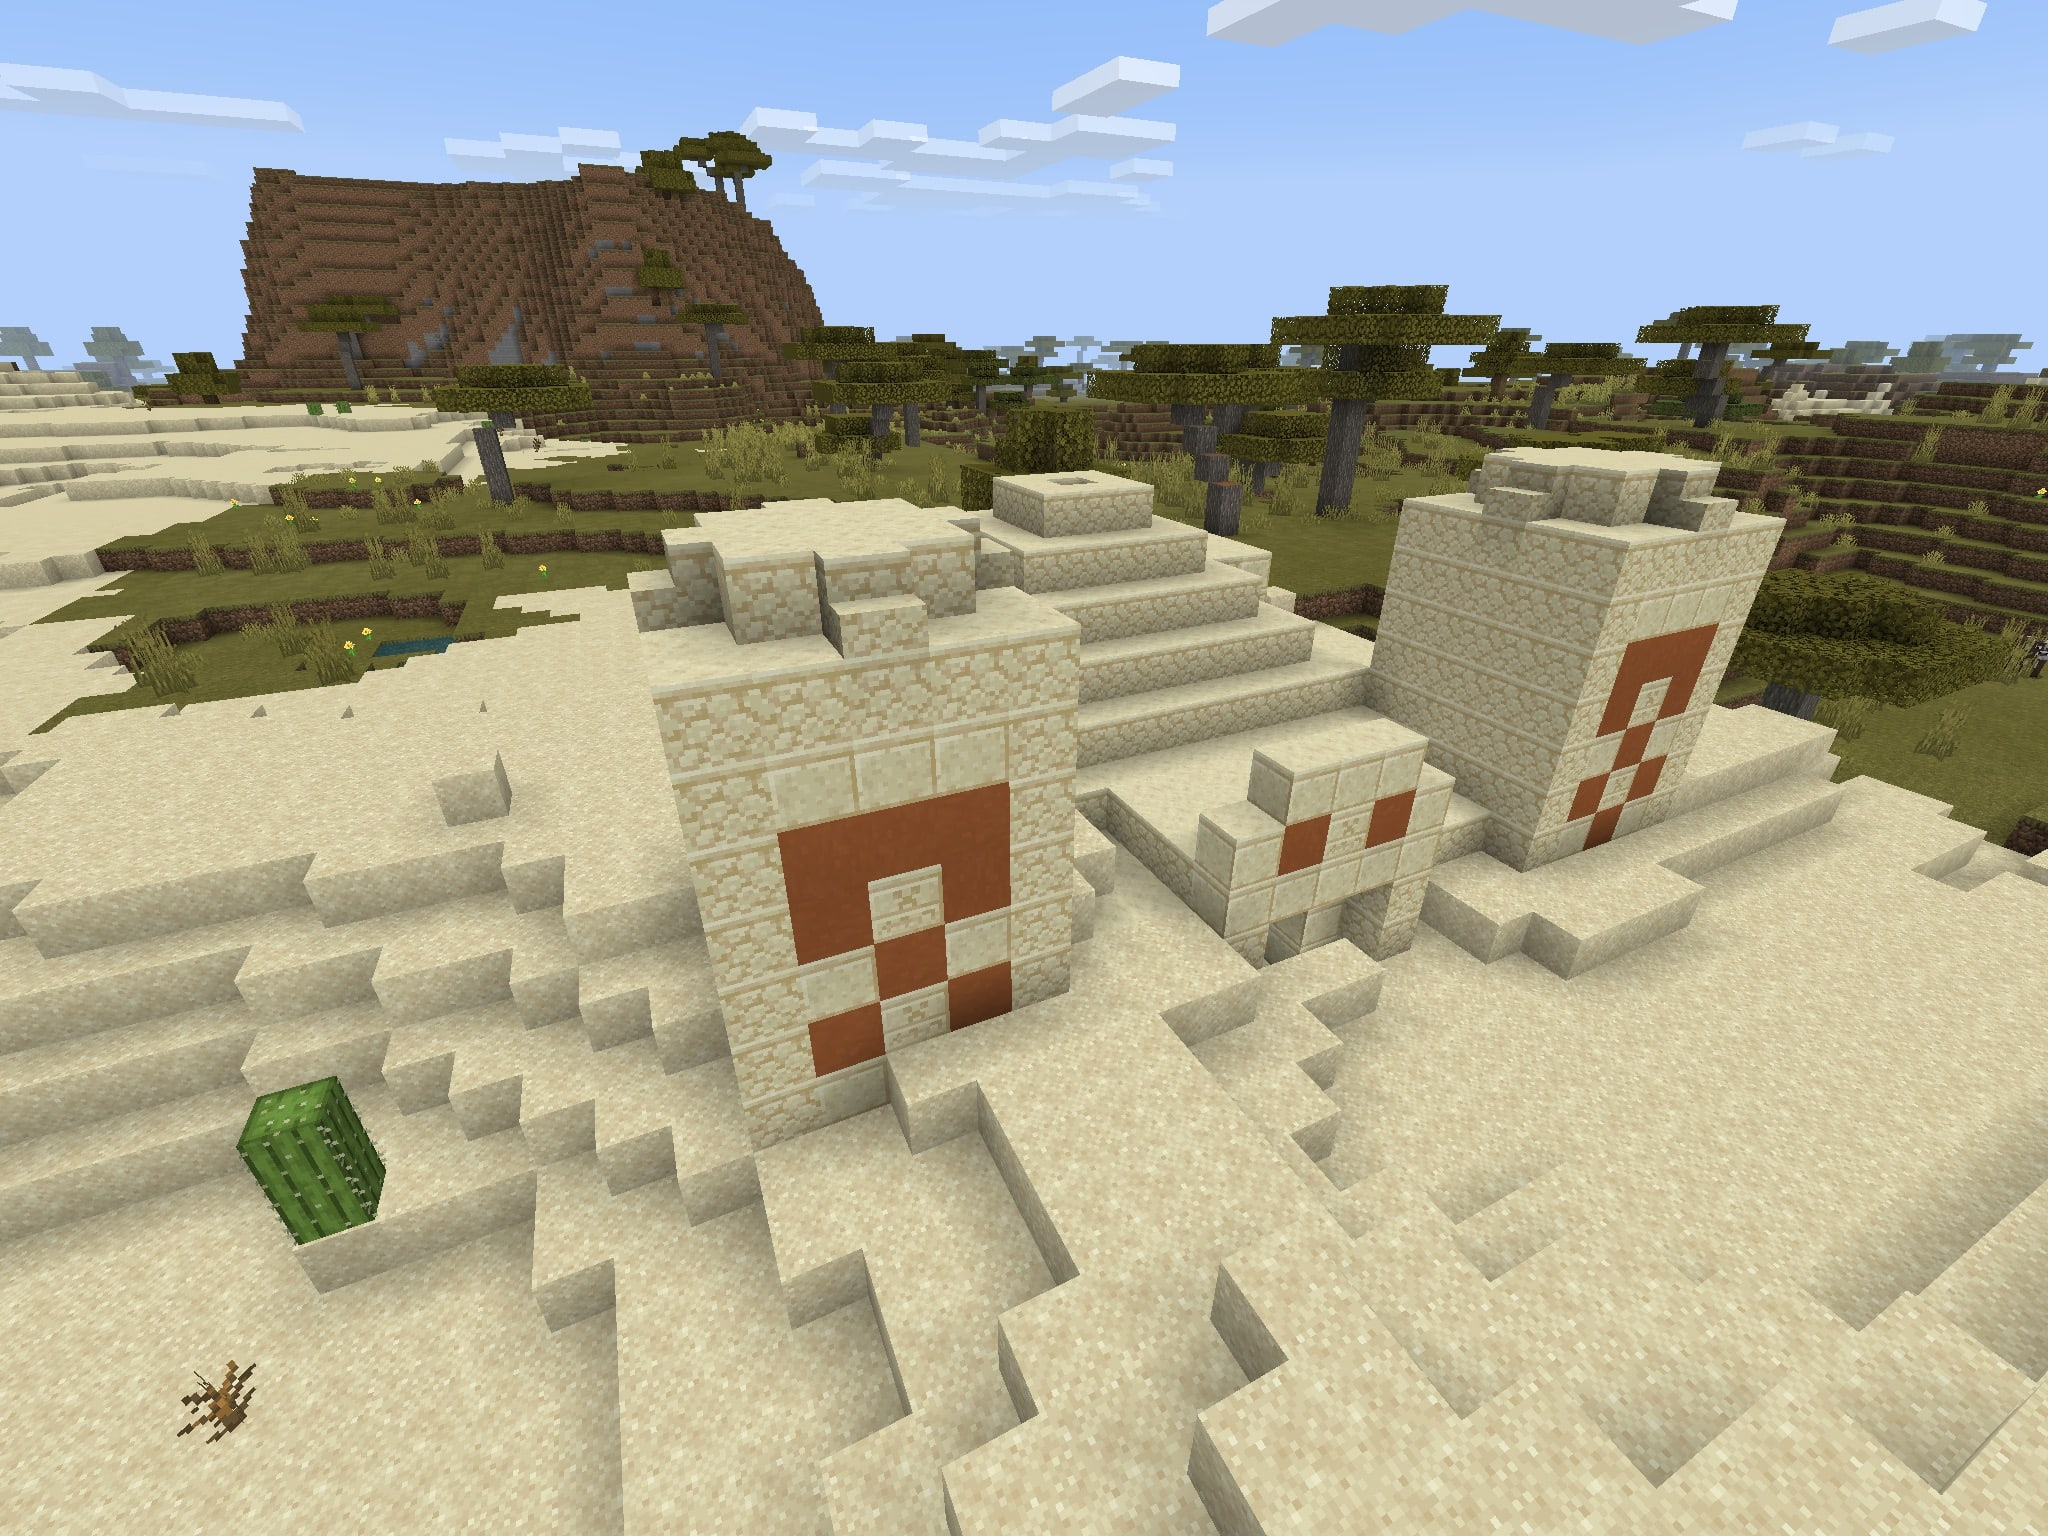 Awesome Minecraft Seeds - Minecraft Seed HQ